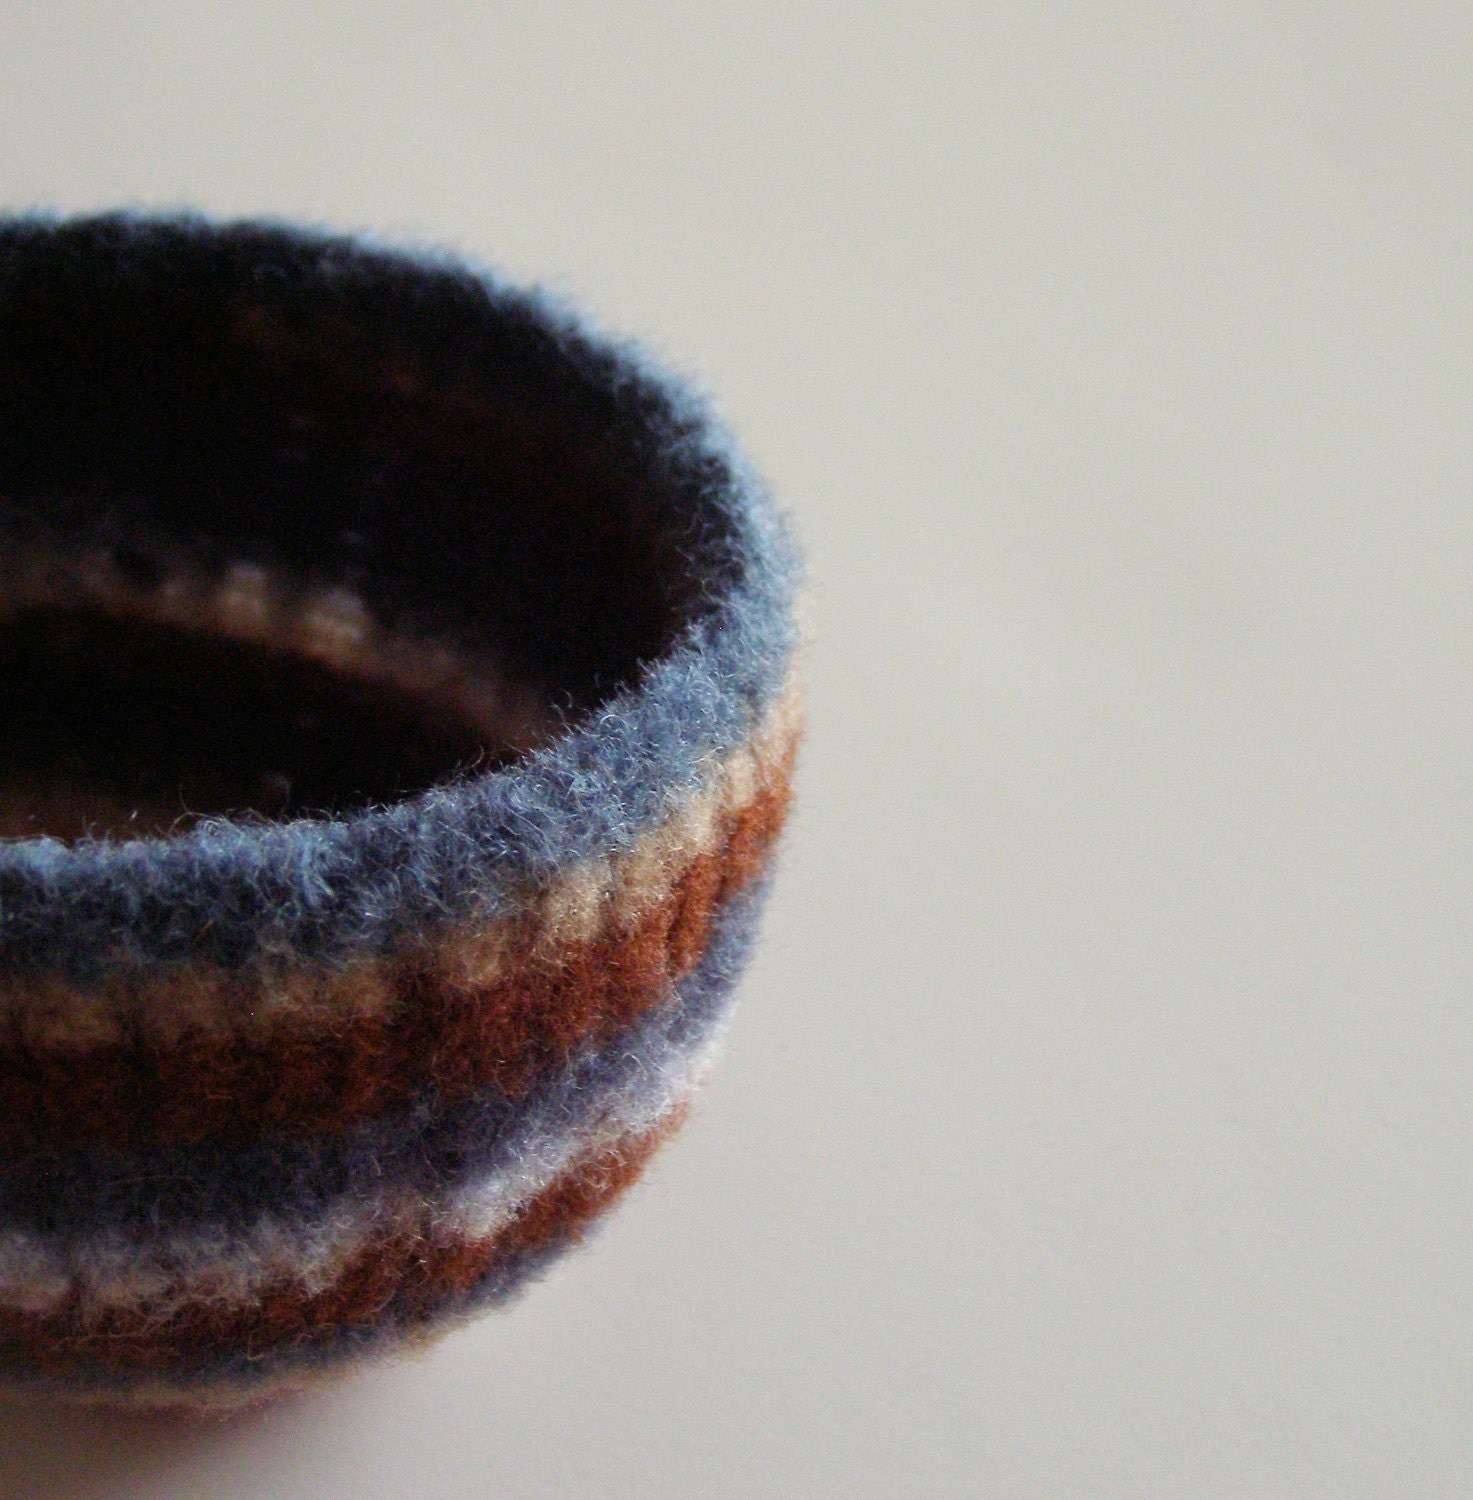 felted wool striped bowl - earth tone stripes of blue, brown, tan, nougat, chestnut, dark red, and yellow - desk organizer - back to school - theFelterie